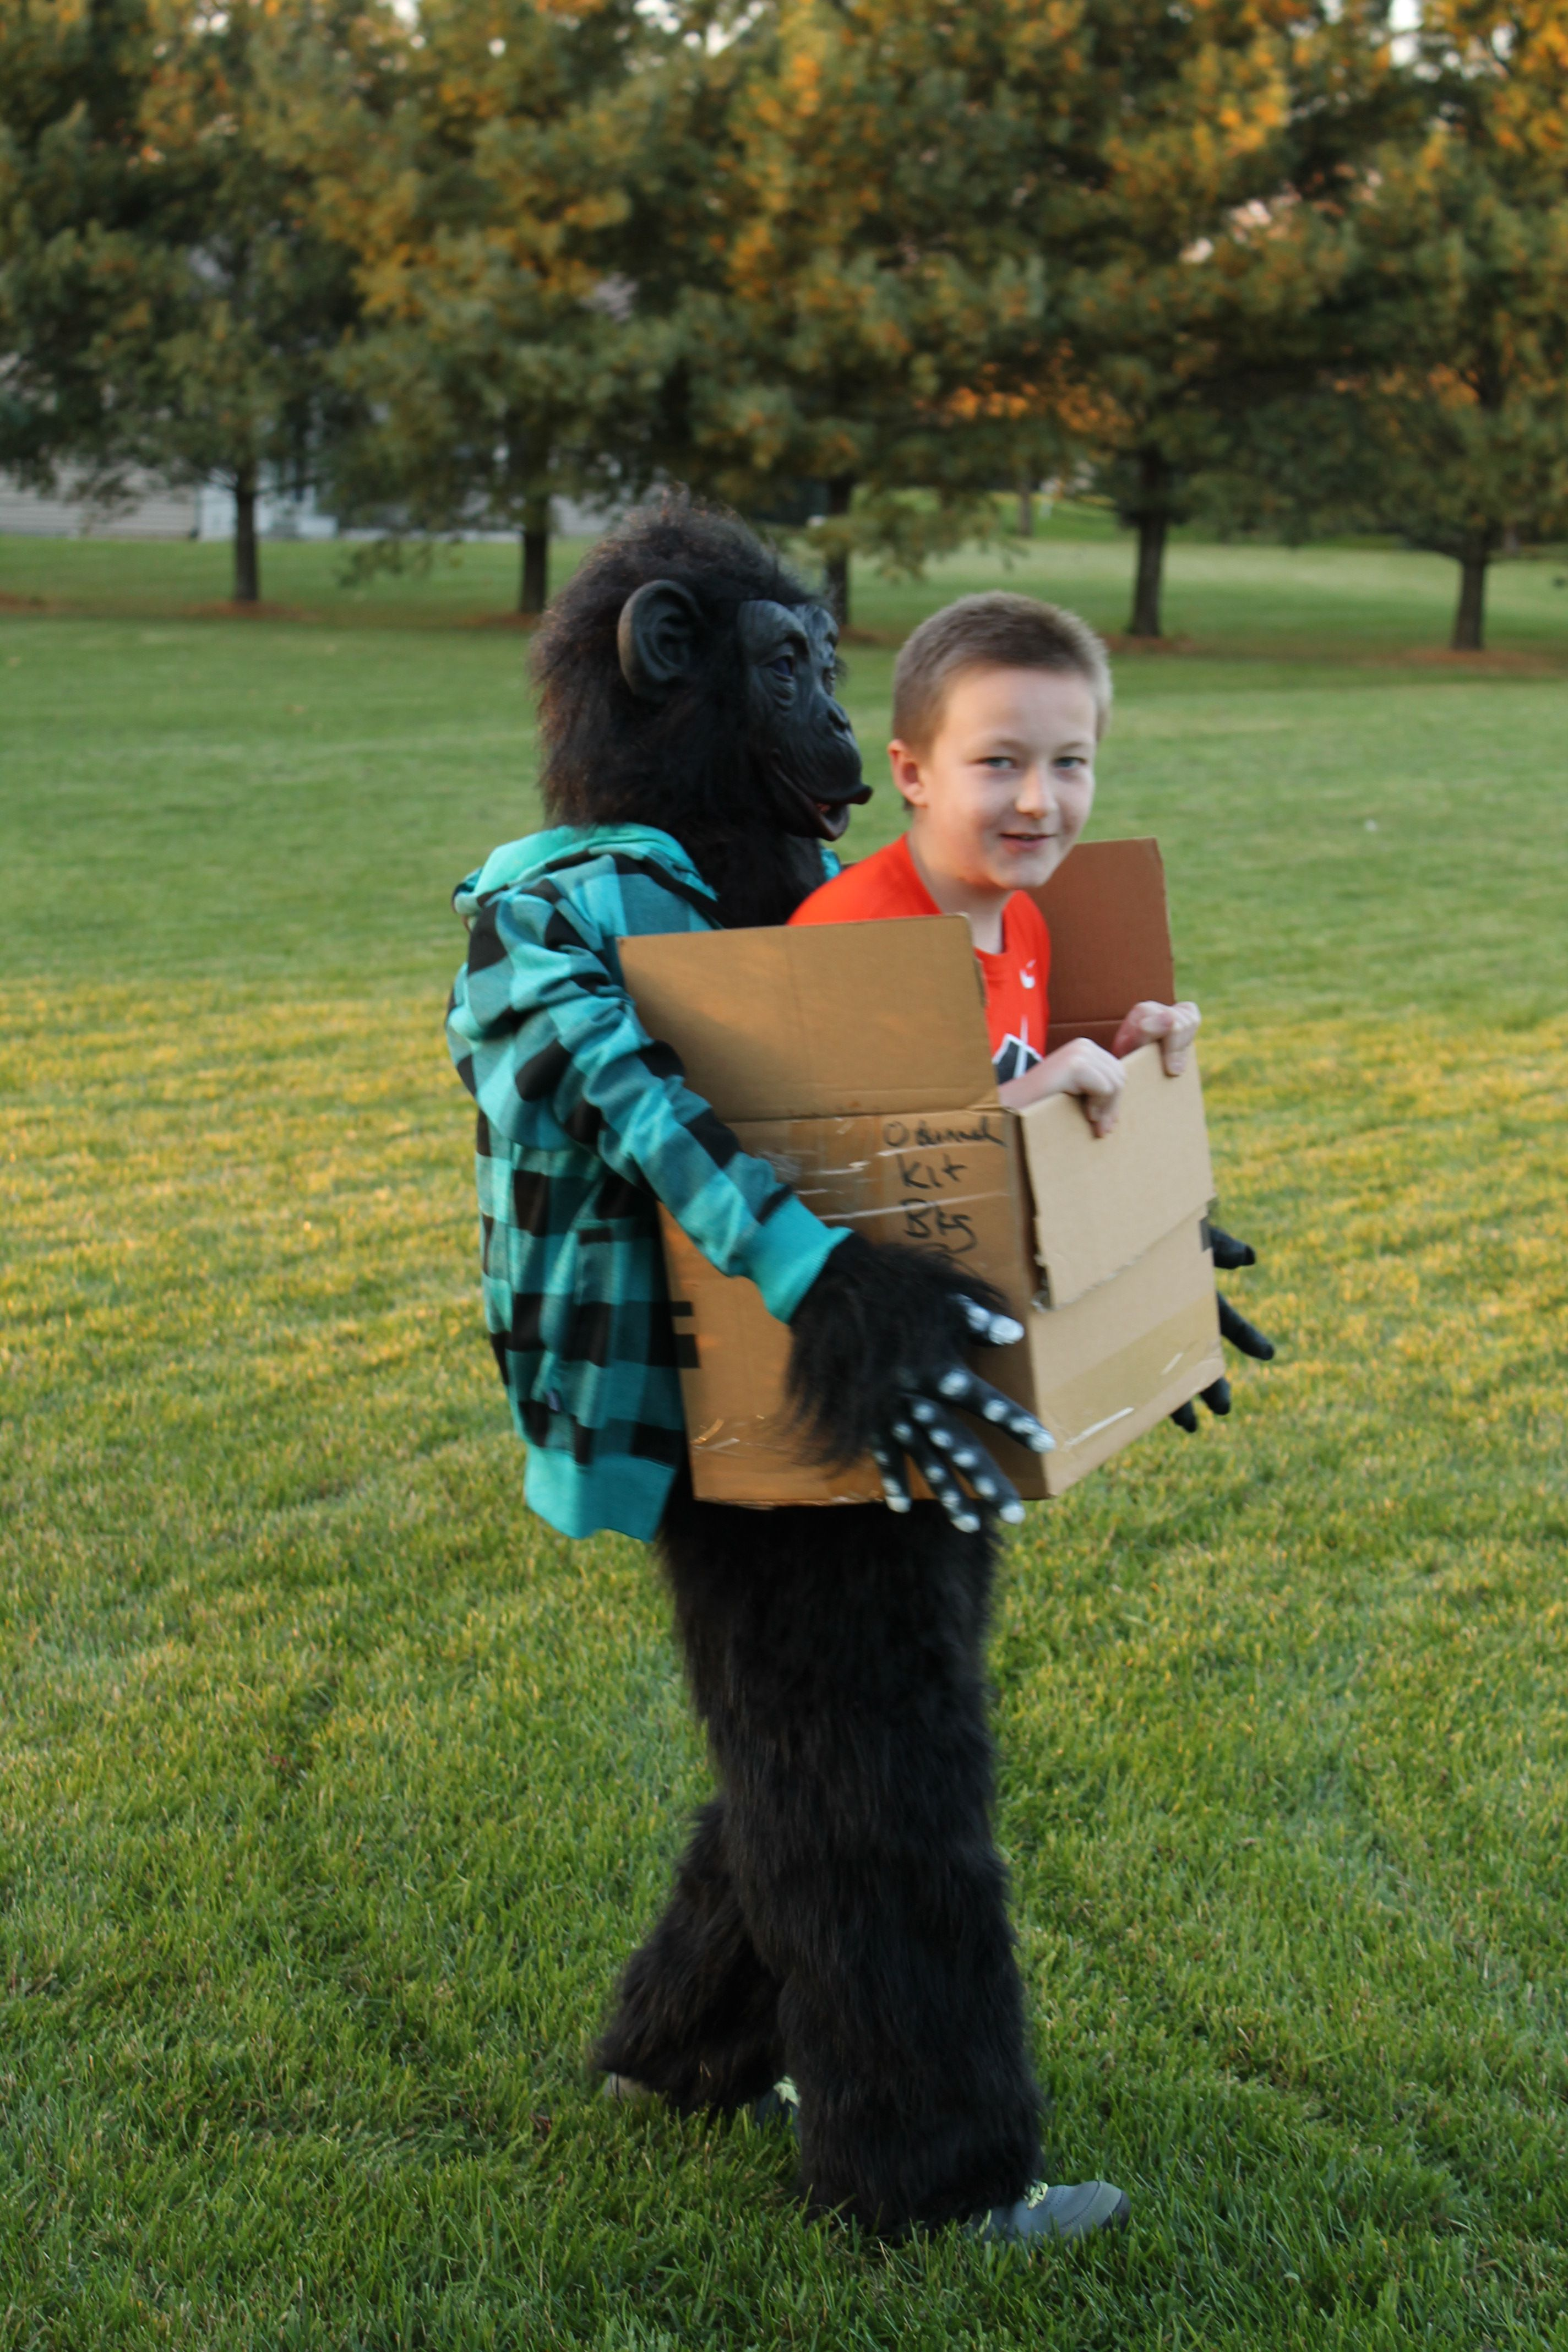 Kev S 5th Grade Halloween Costume Boy In A Box Being Carried By